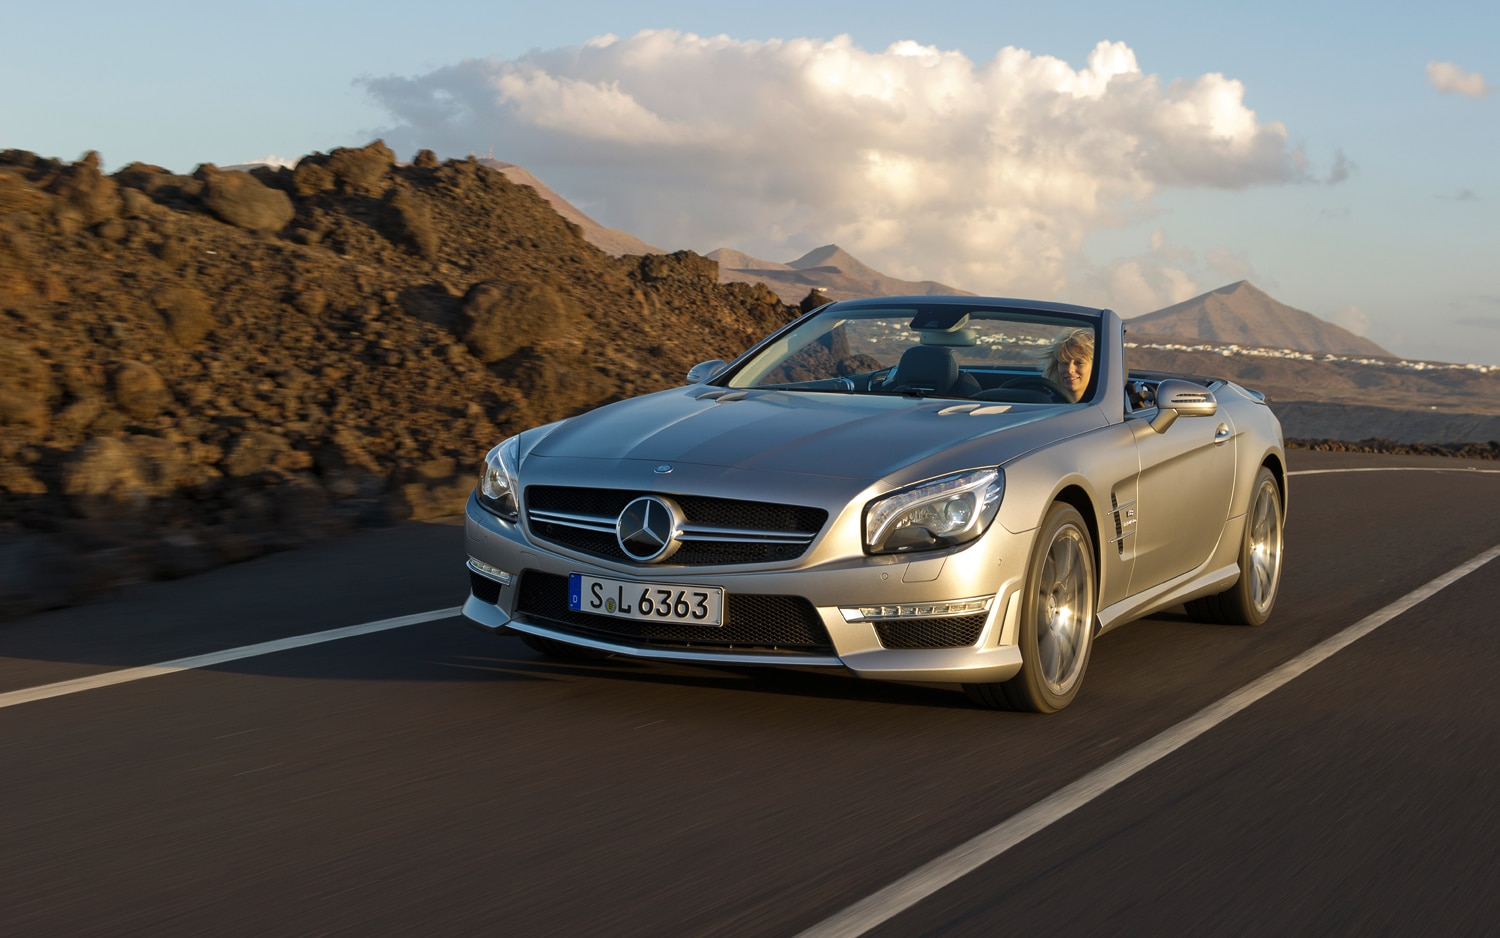 2013 Mercedes Benz SL63 AMG Front Left View2